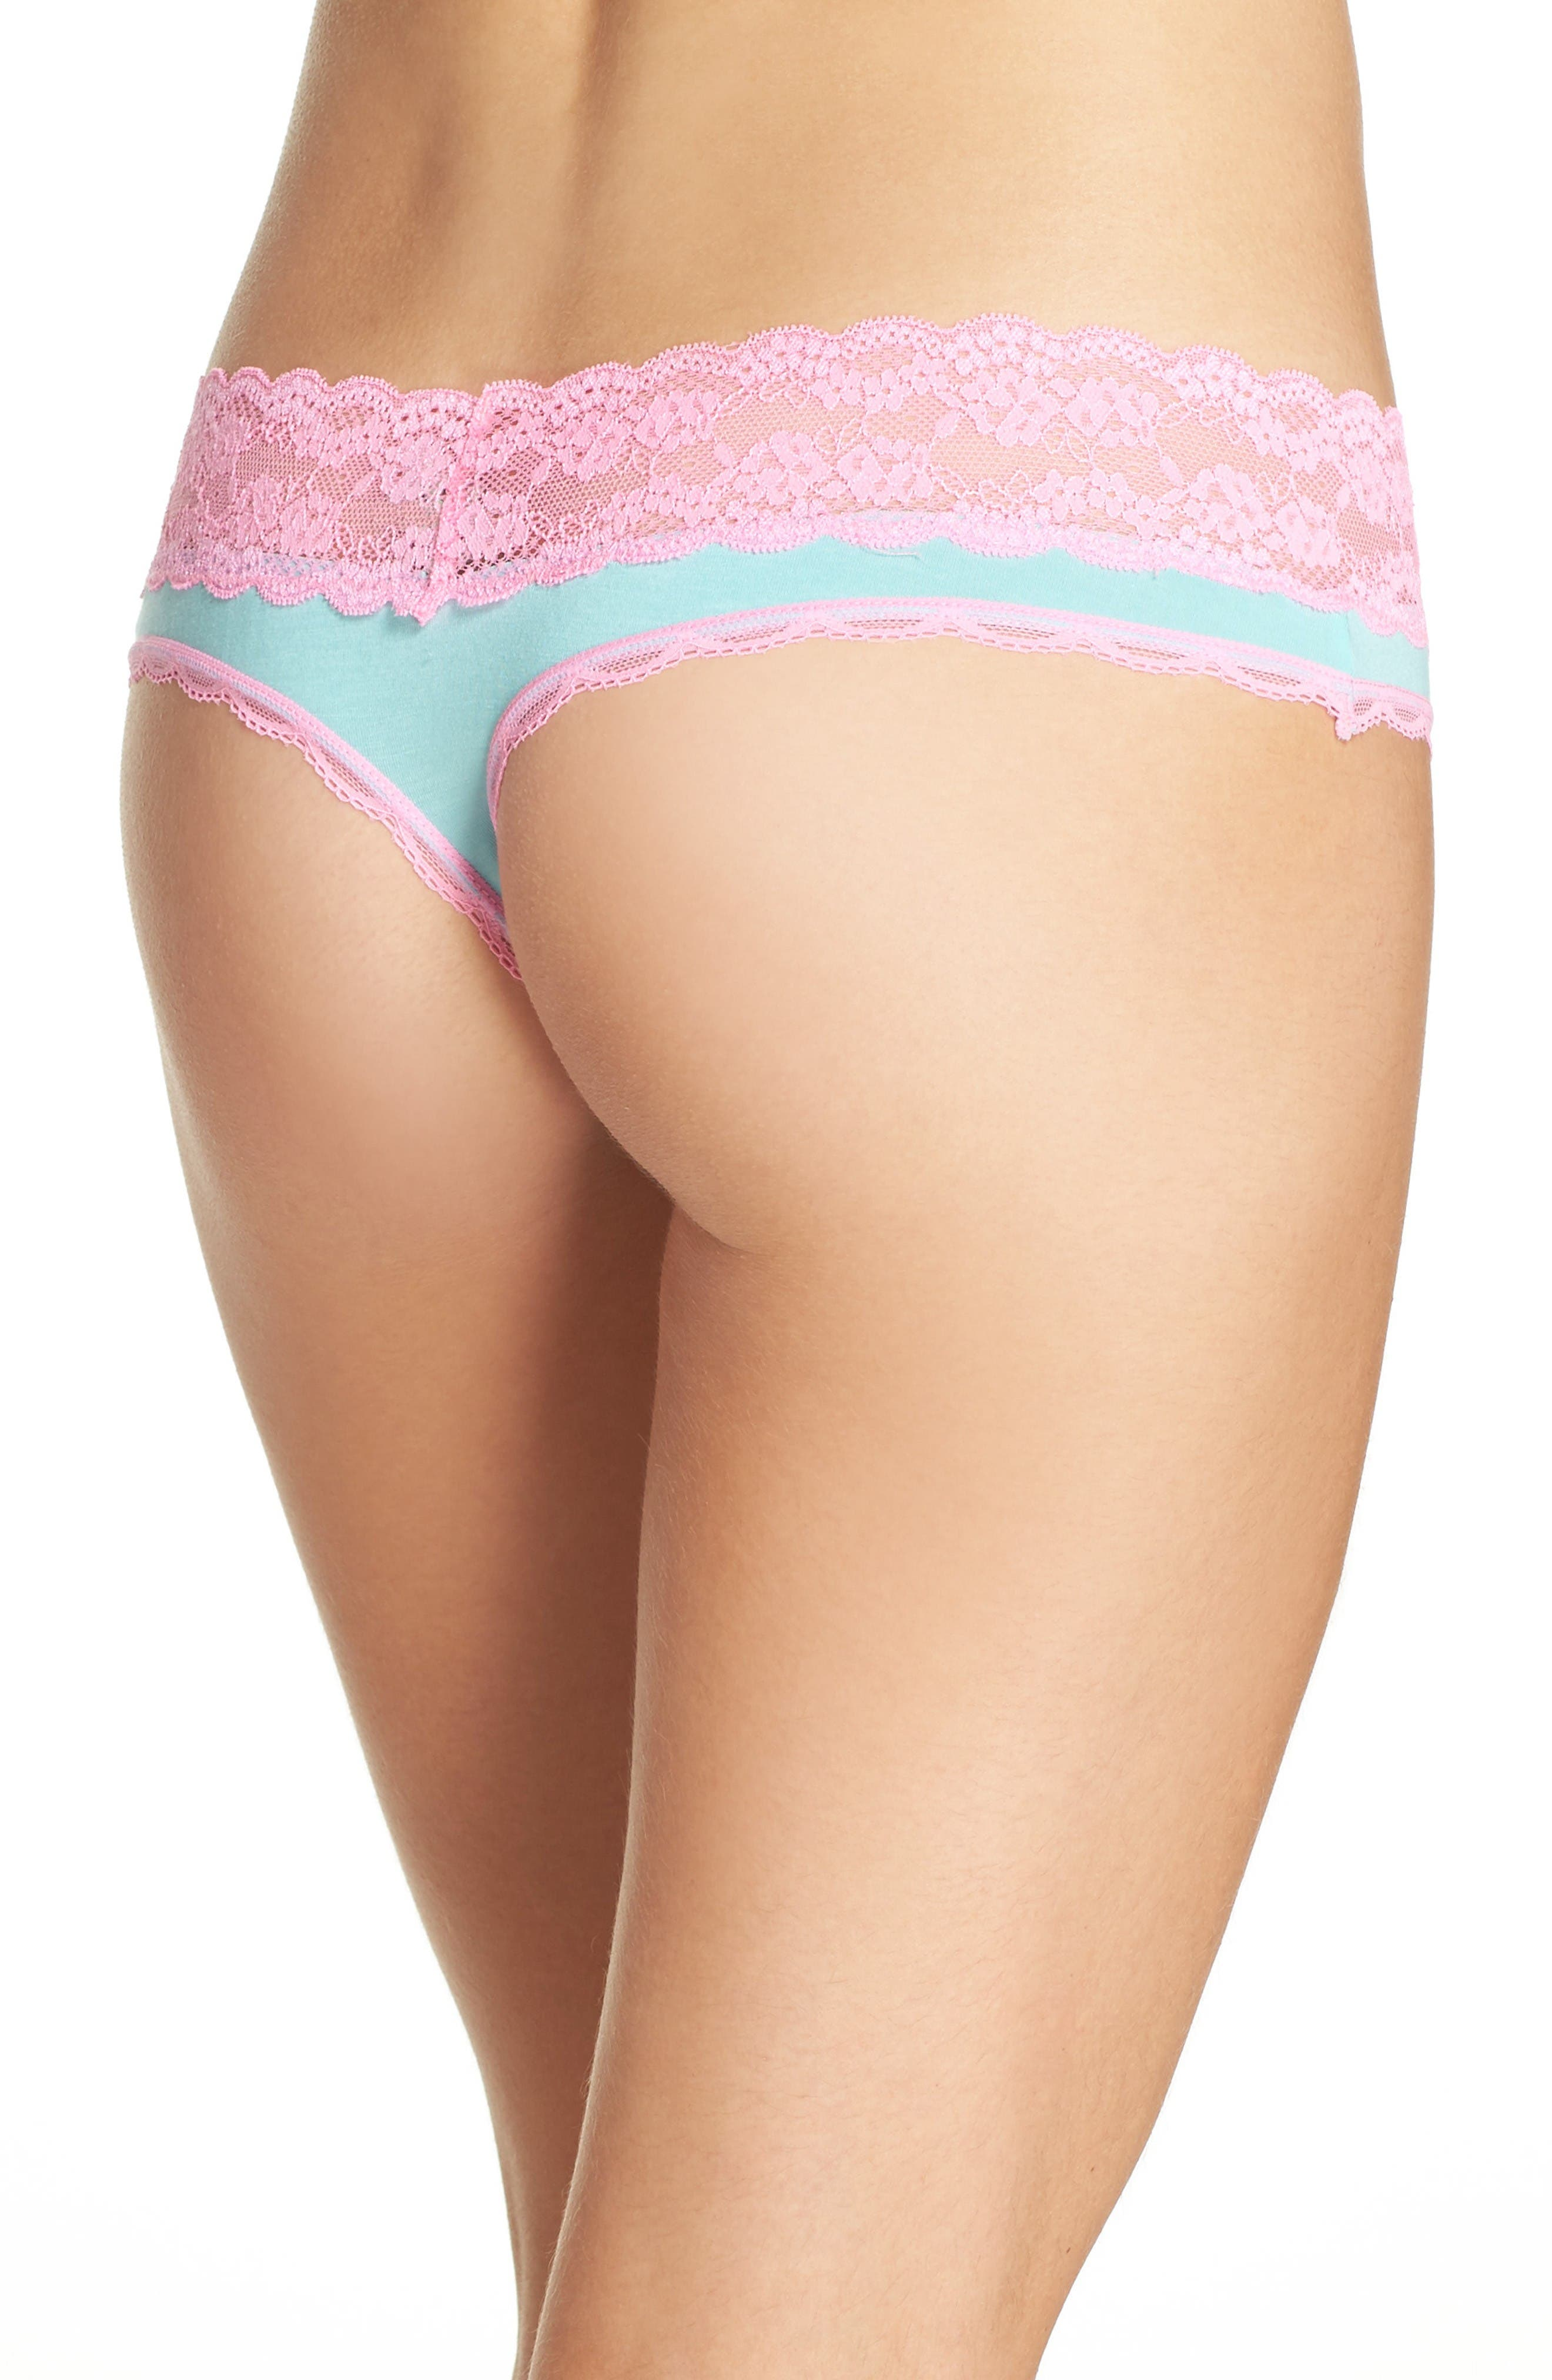 Alternate Image 2  - Honeydew Intimates Lace Trim Low Rise Thong (3 for $33)